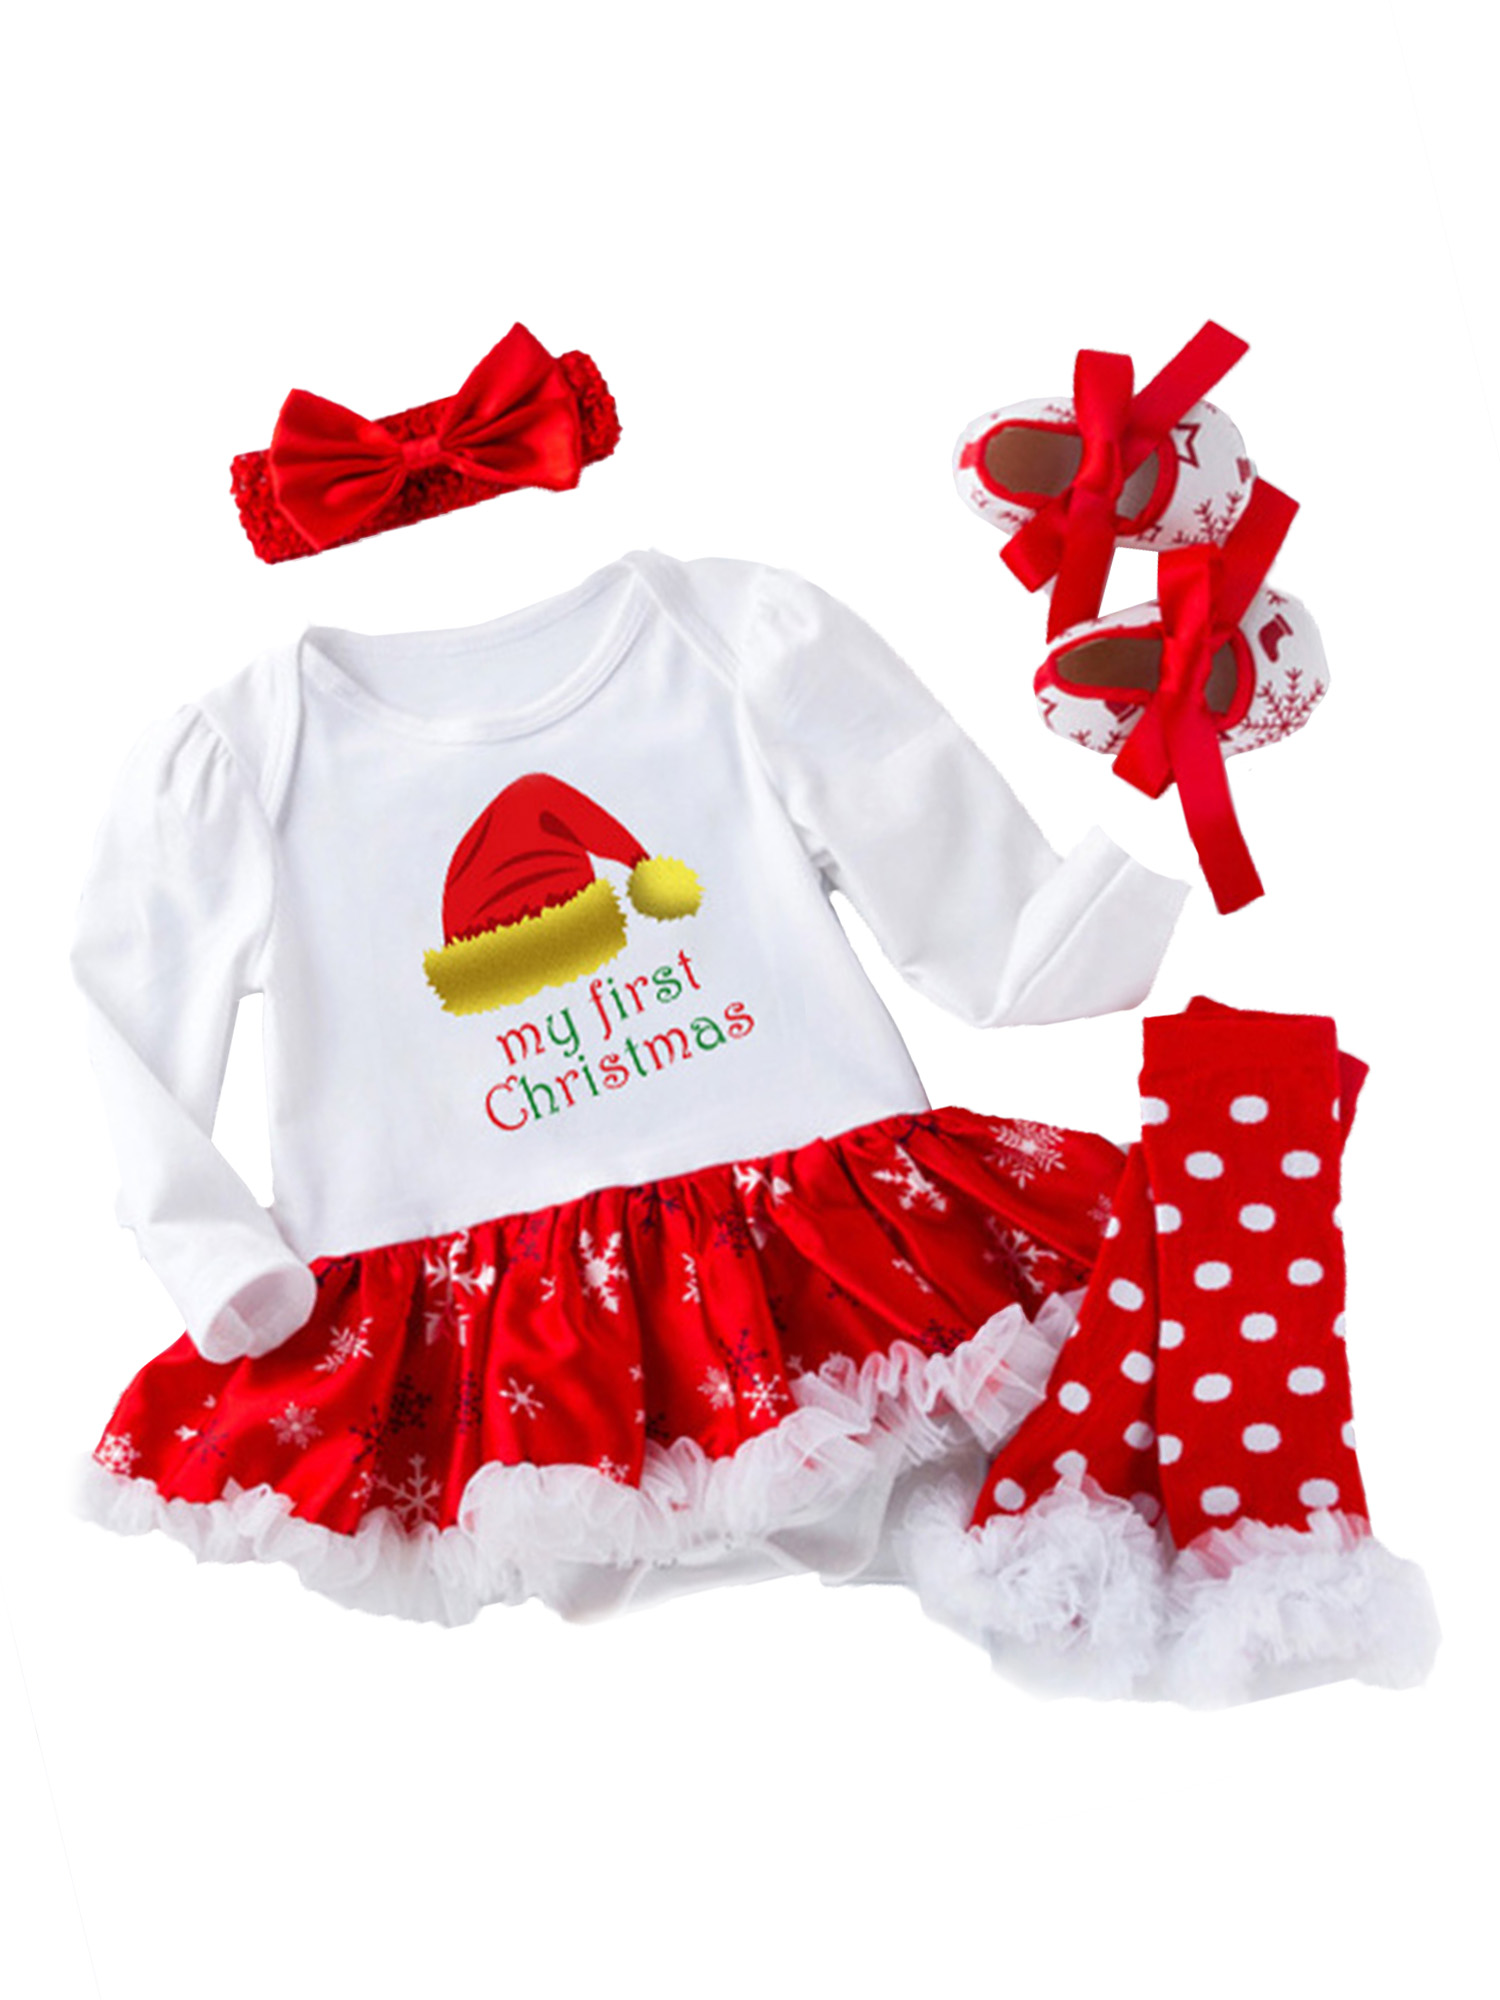 My first Christmas toddler christmas tutu Elf Size girls outfit personalized christmas shirt Christmas baby Elf outfit holiday wear